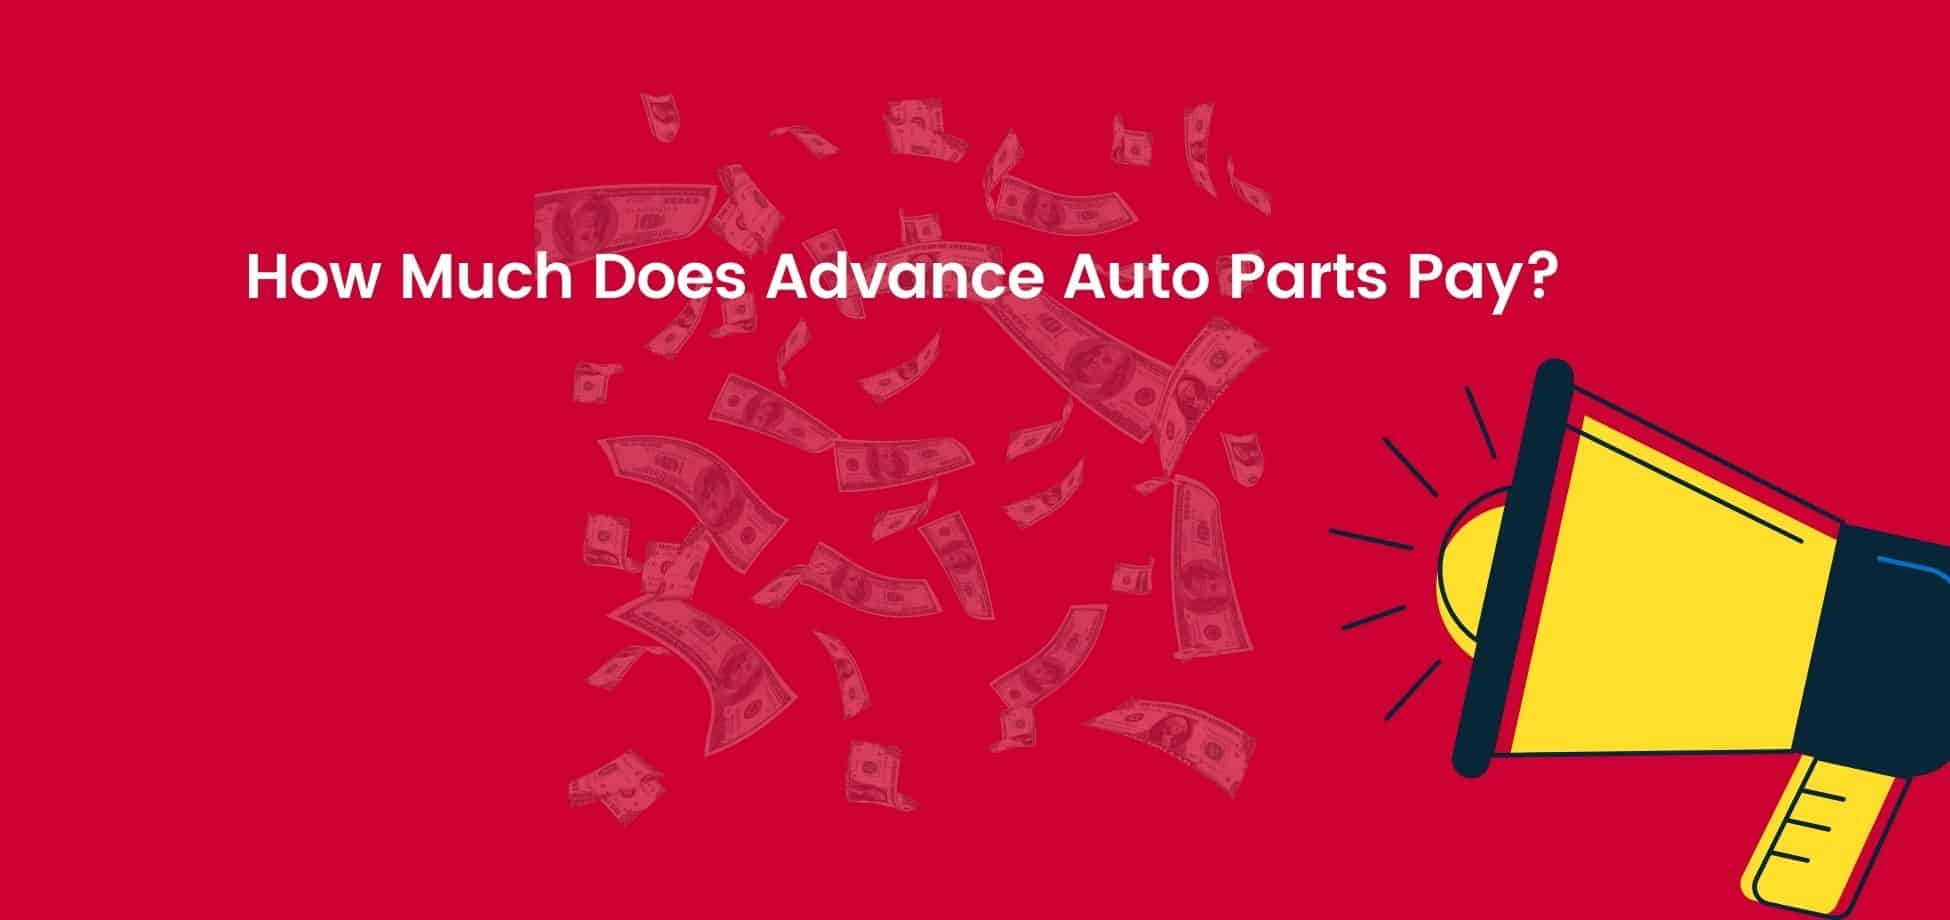 The Advance Auto Parts starting hourly pay leaves a lot to be desired but at least there is room to grow within the company.